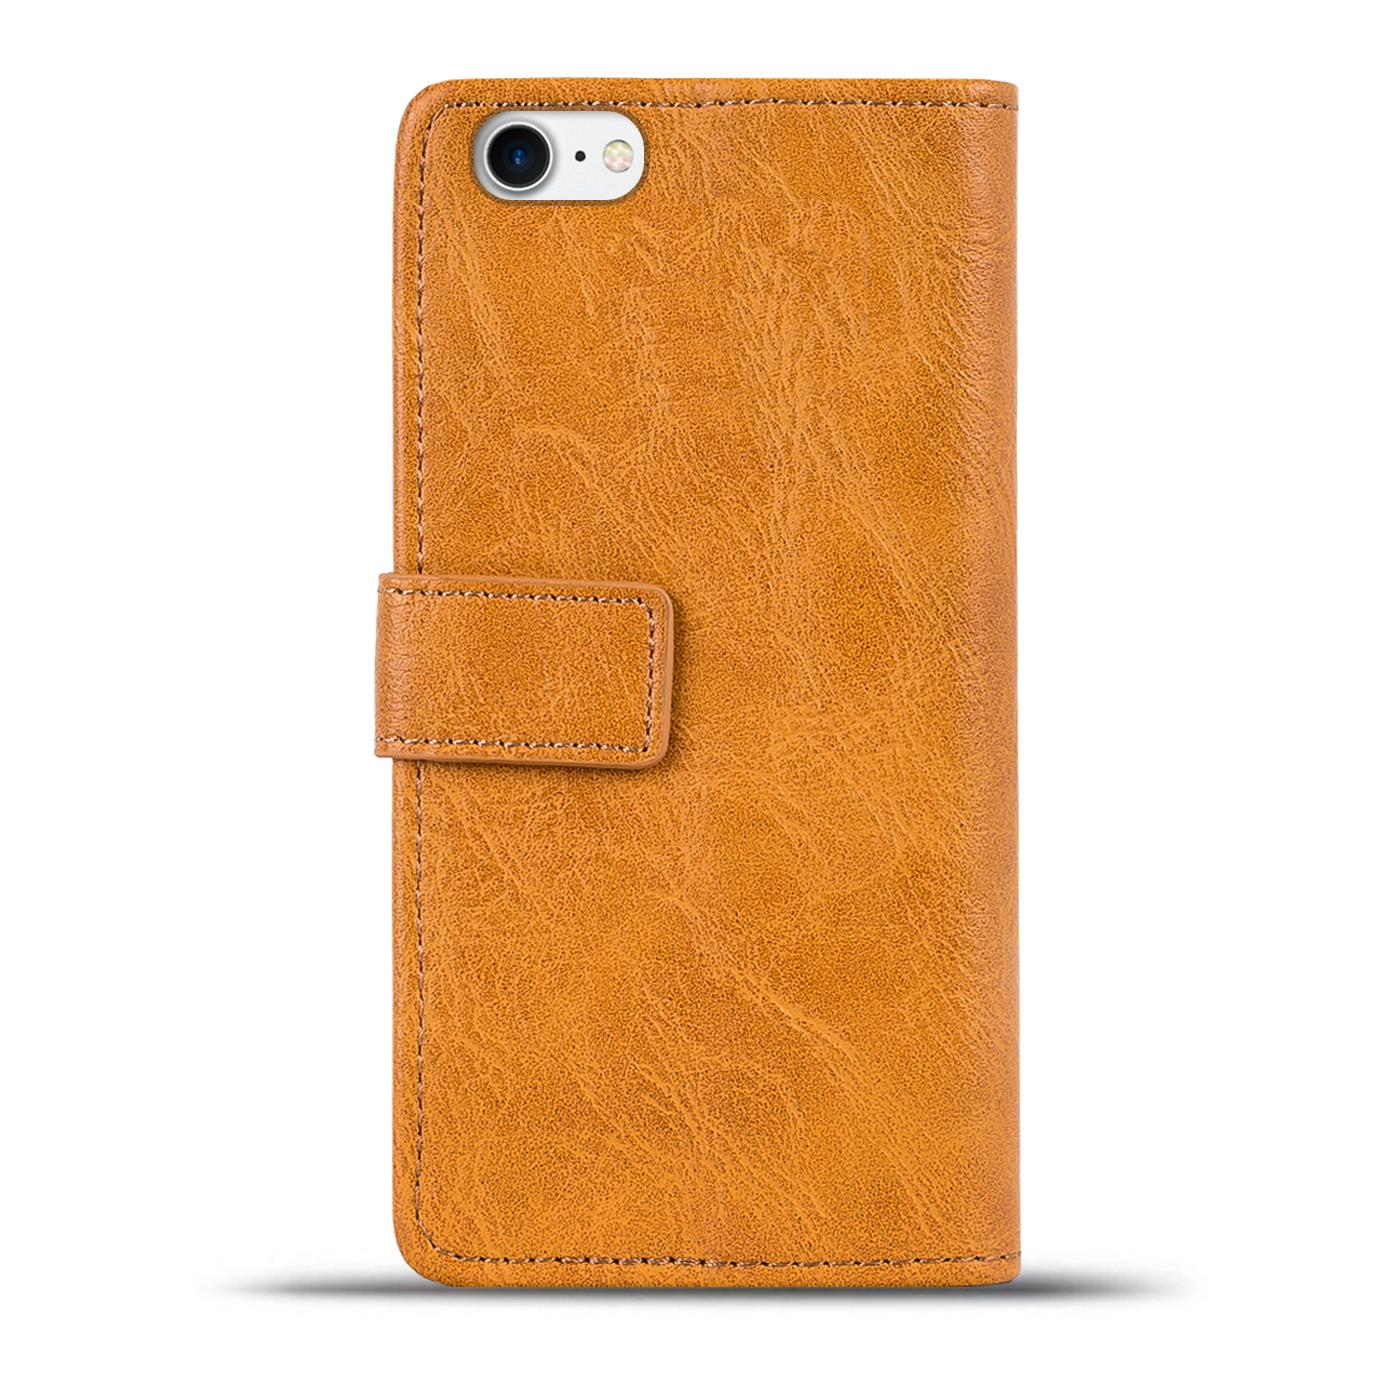 Funda Libro Iphone 7 Funda Libro Para Apple Iphone Móvil Plegable Protección